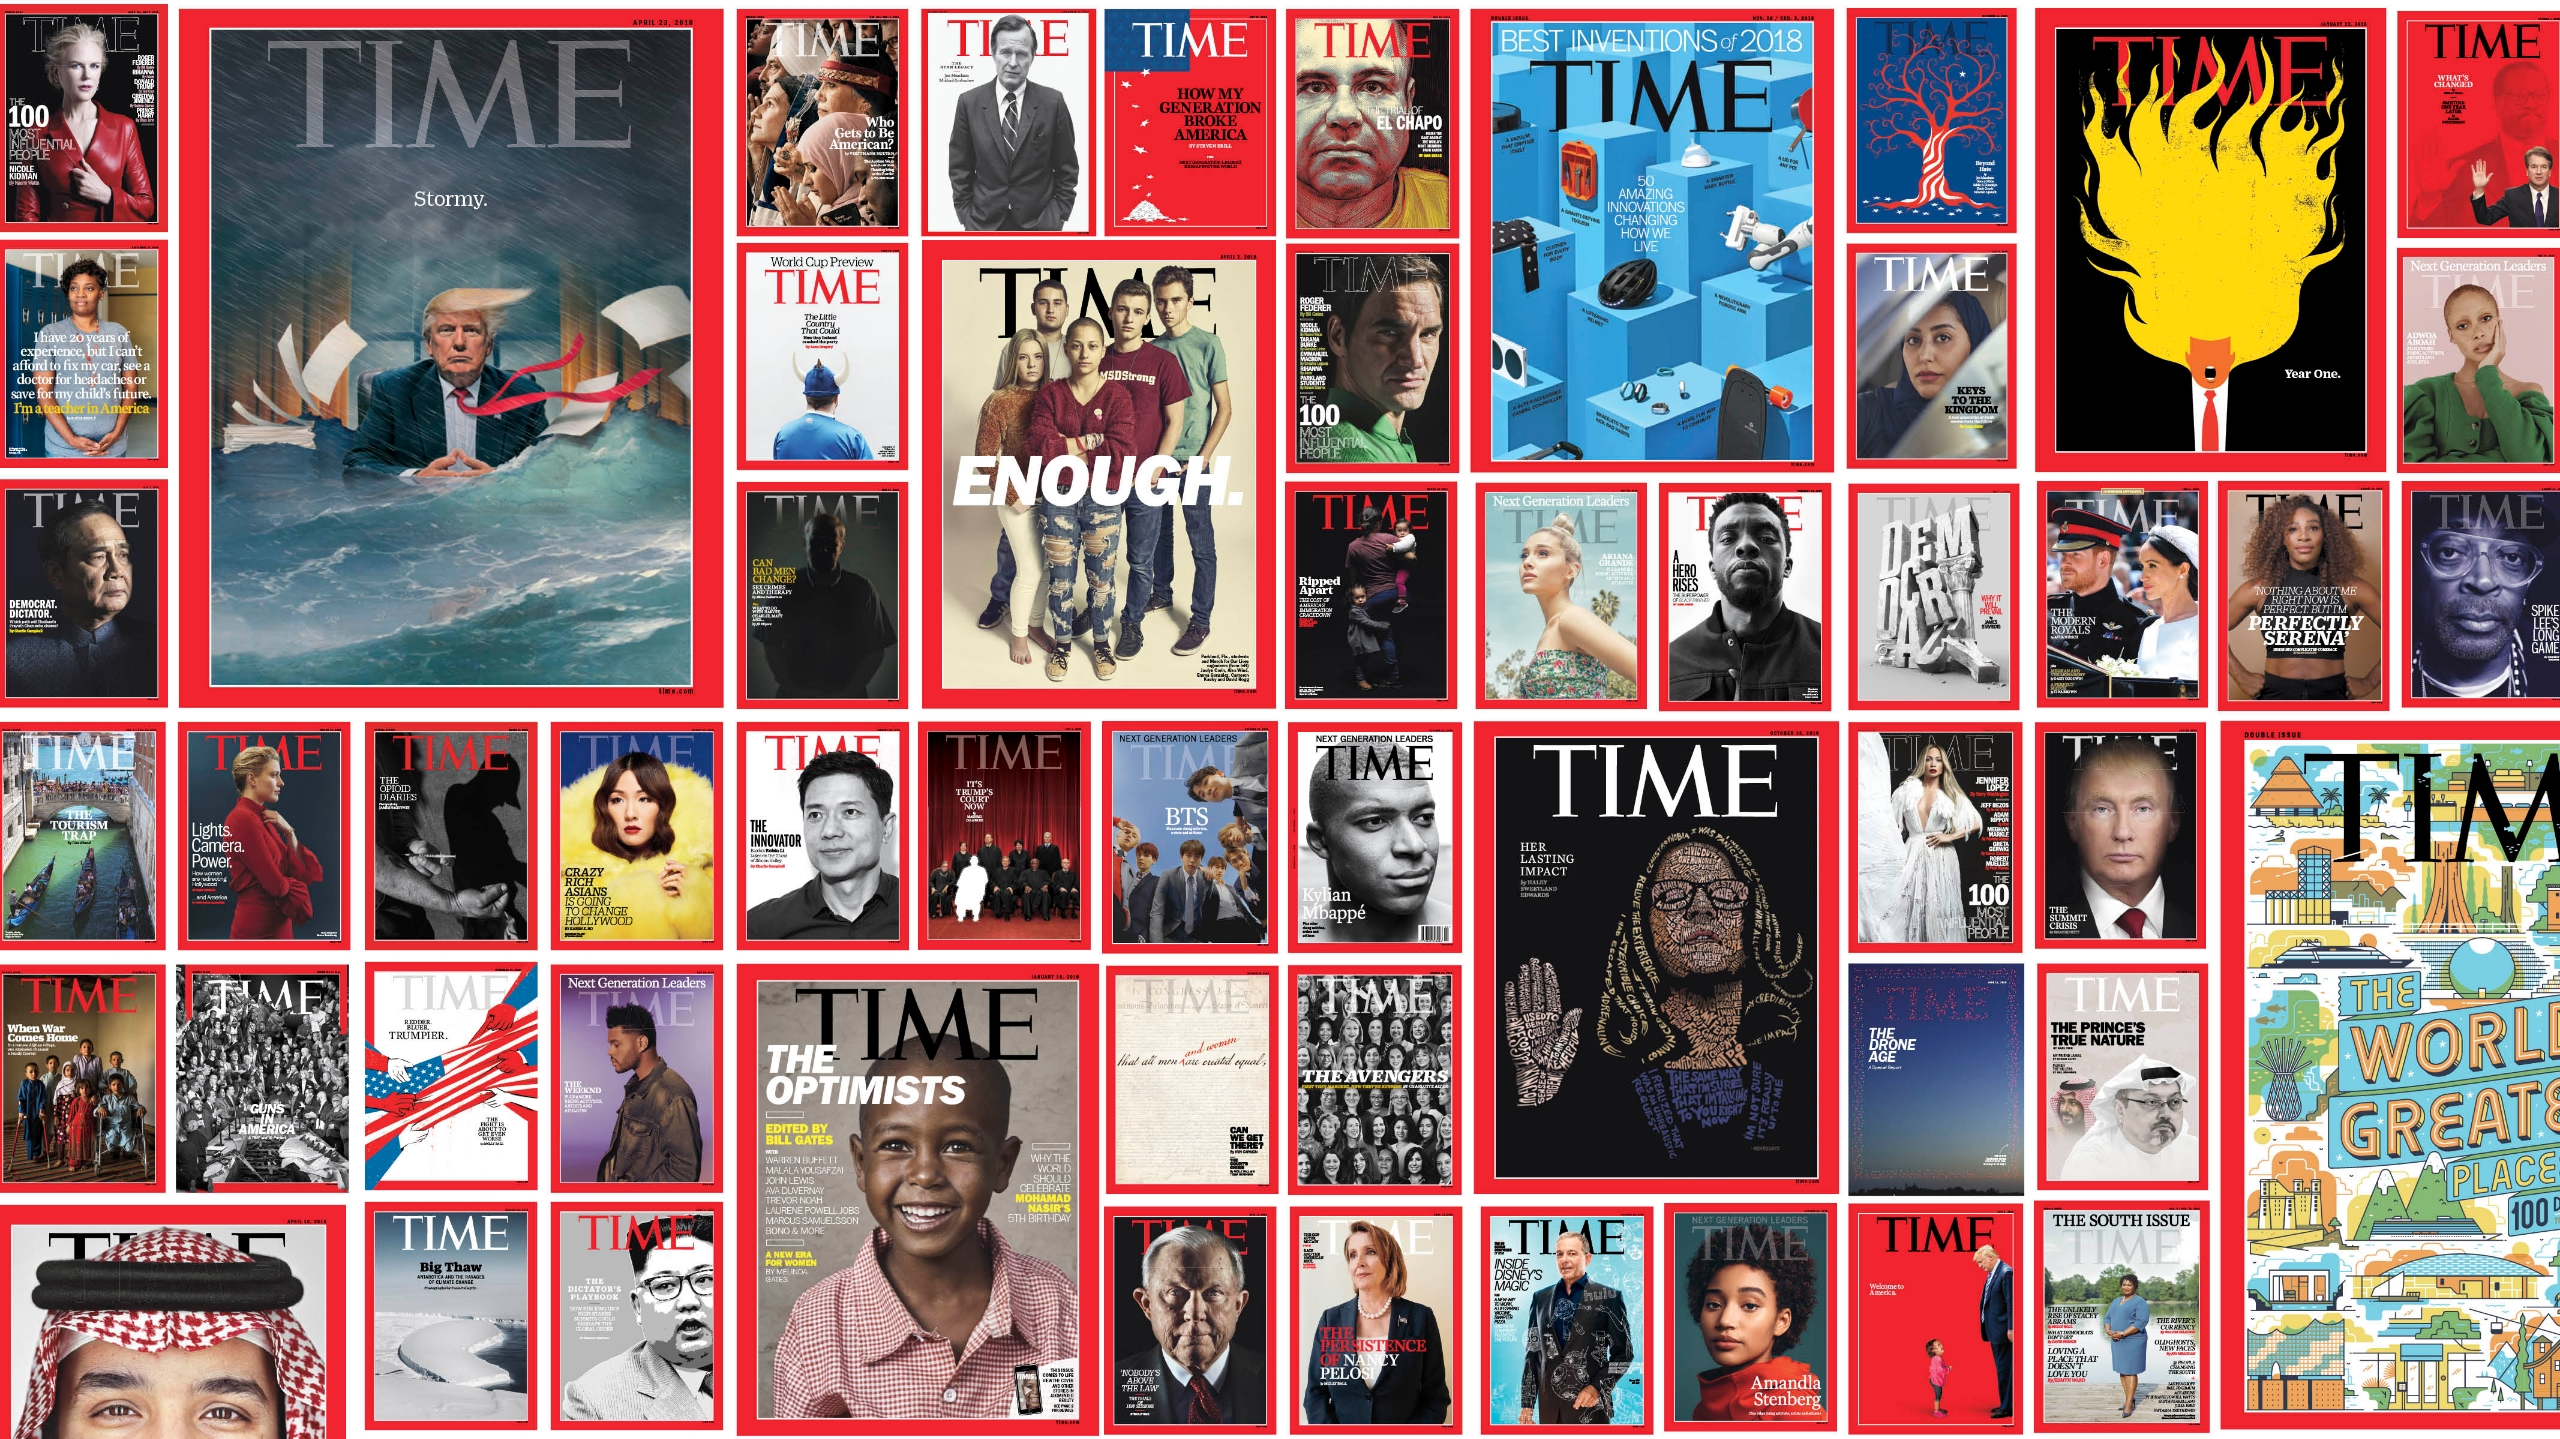 TIME (@timemag) Cover Image